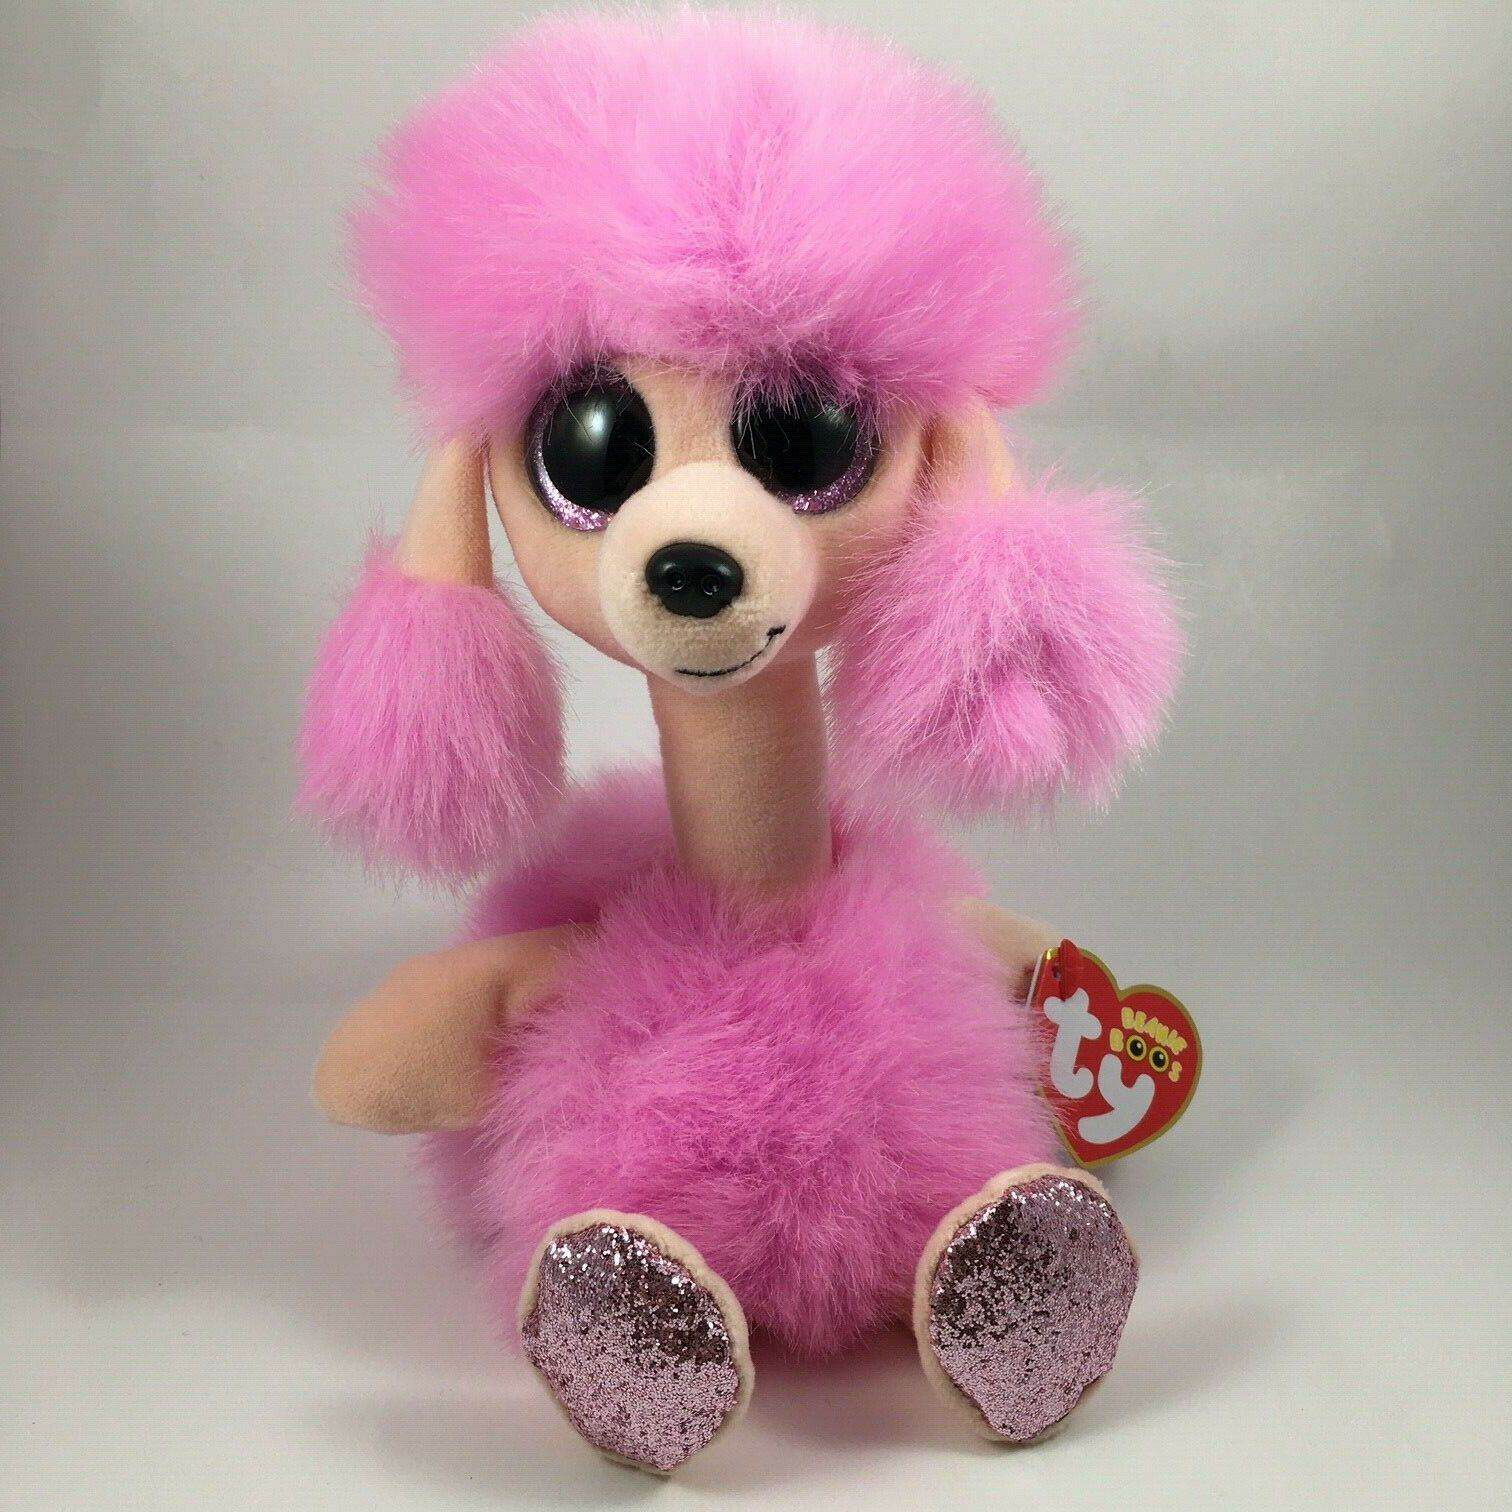 Details About New 2020 Ty Beanie Boos 6 Camilla Pink Poodle Dog